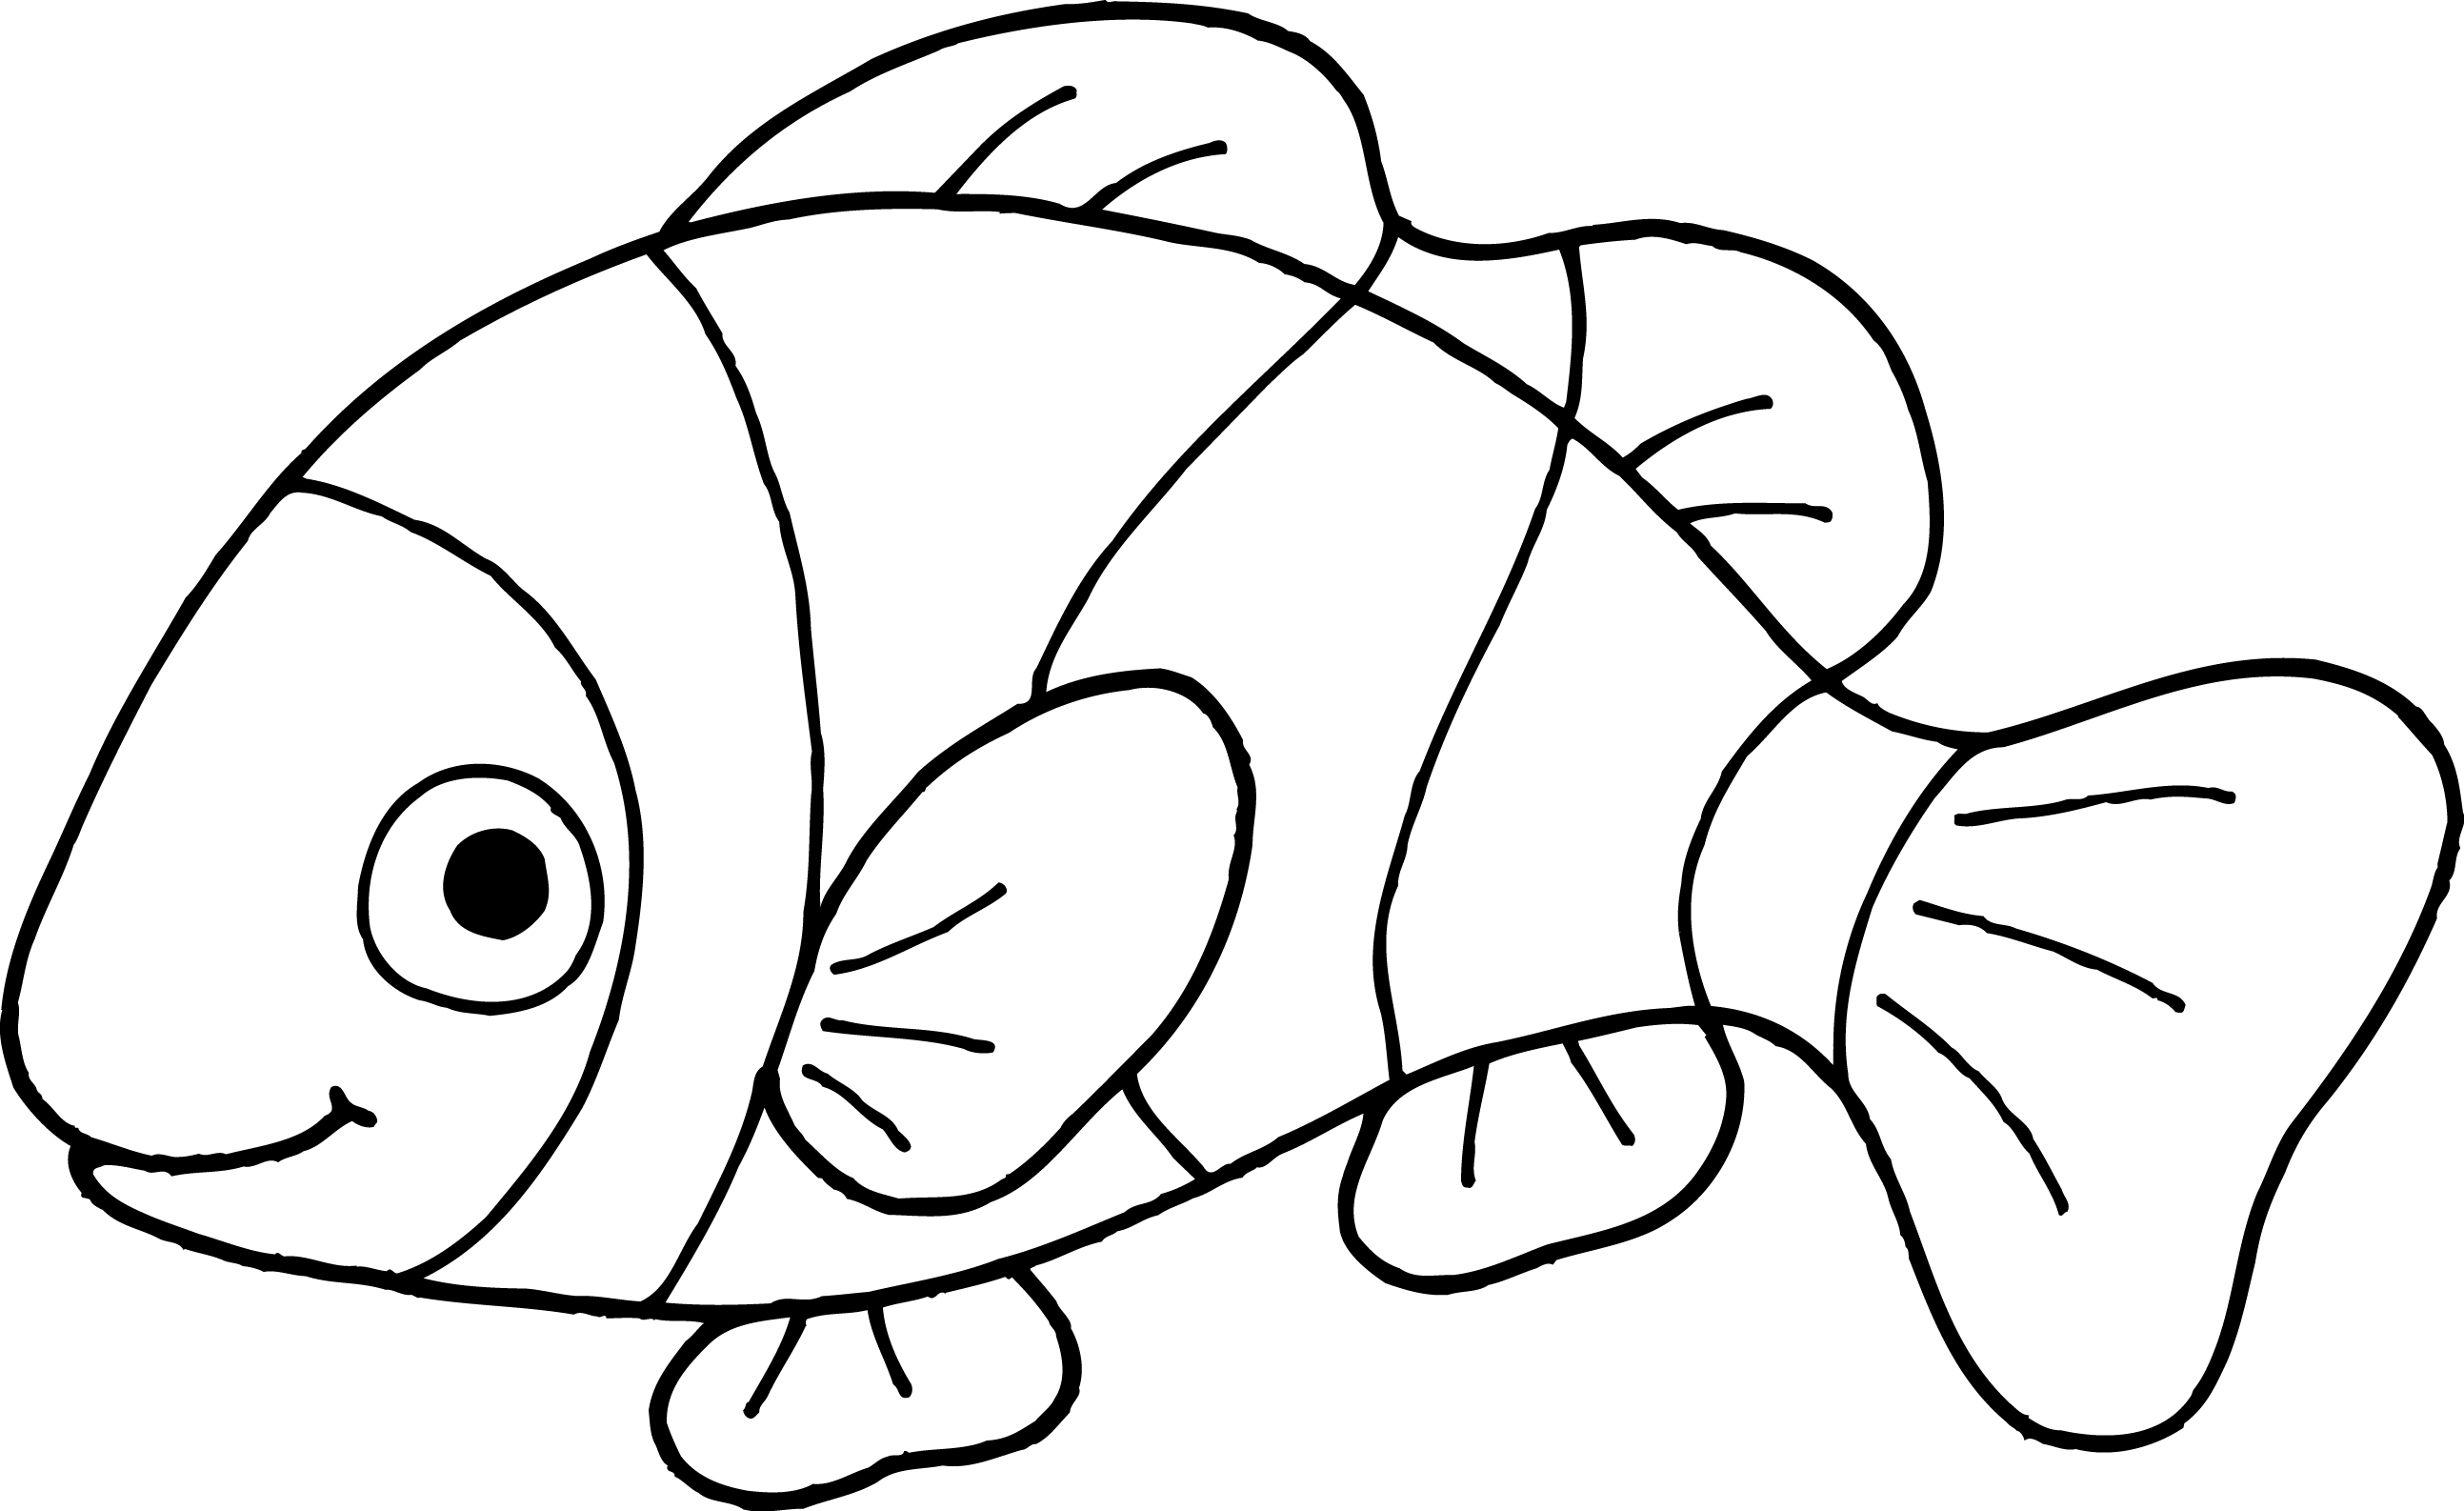 Line Drawing Of Fish : Clown fish clipart panda free images